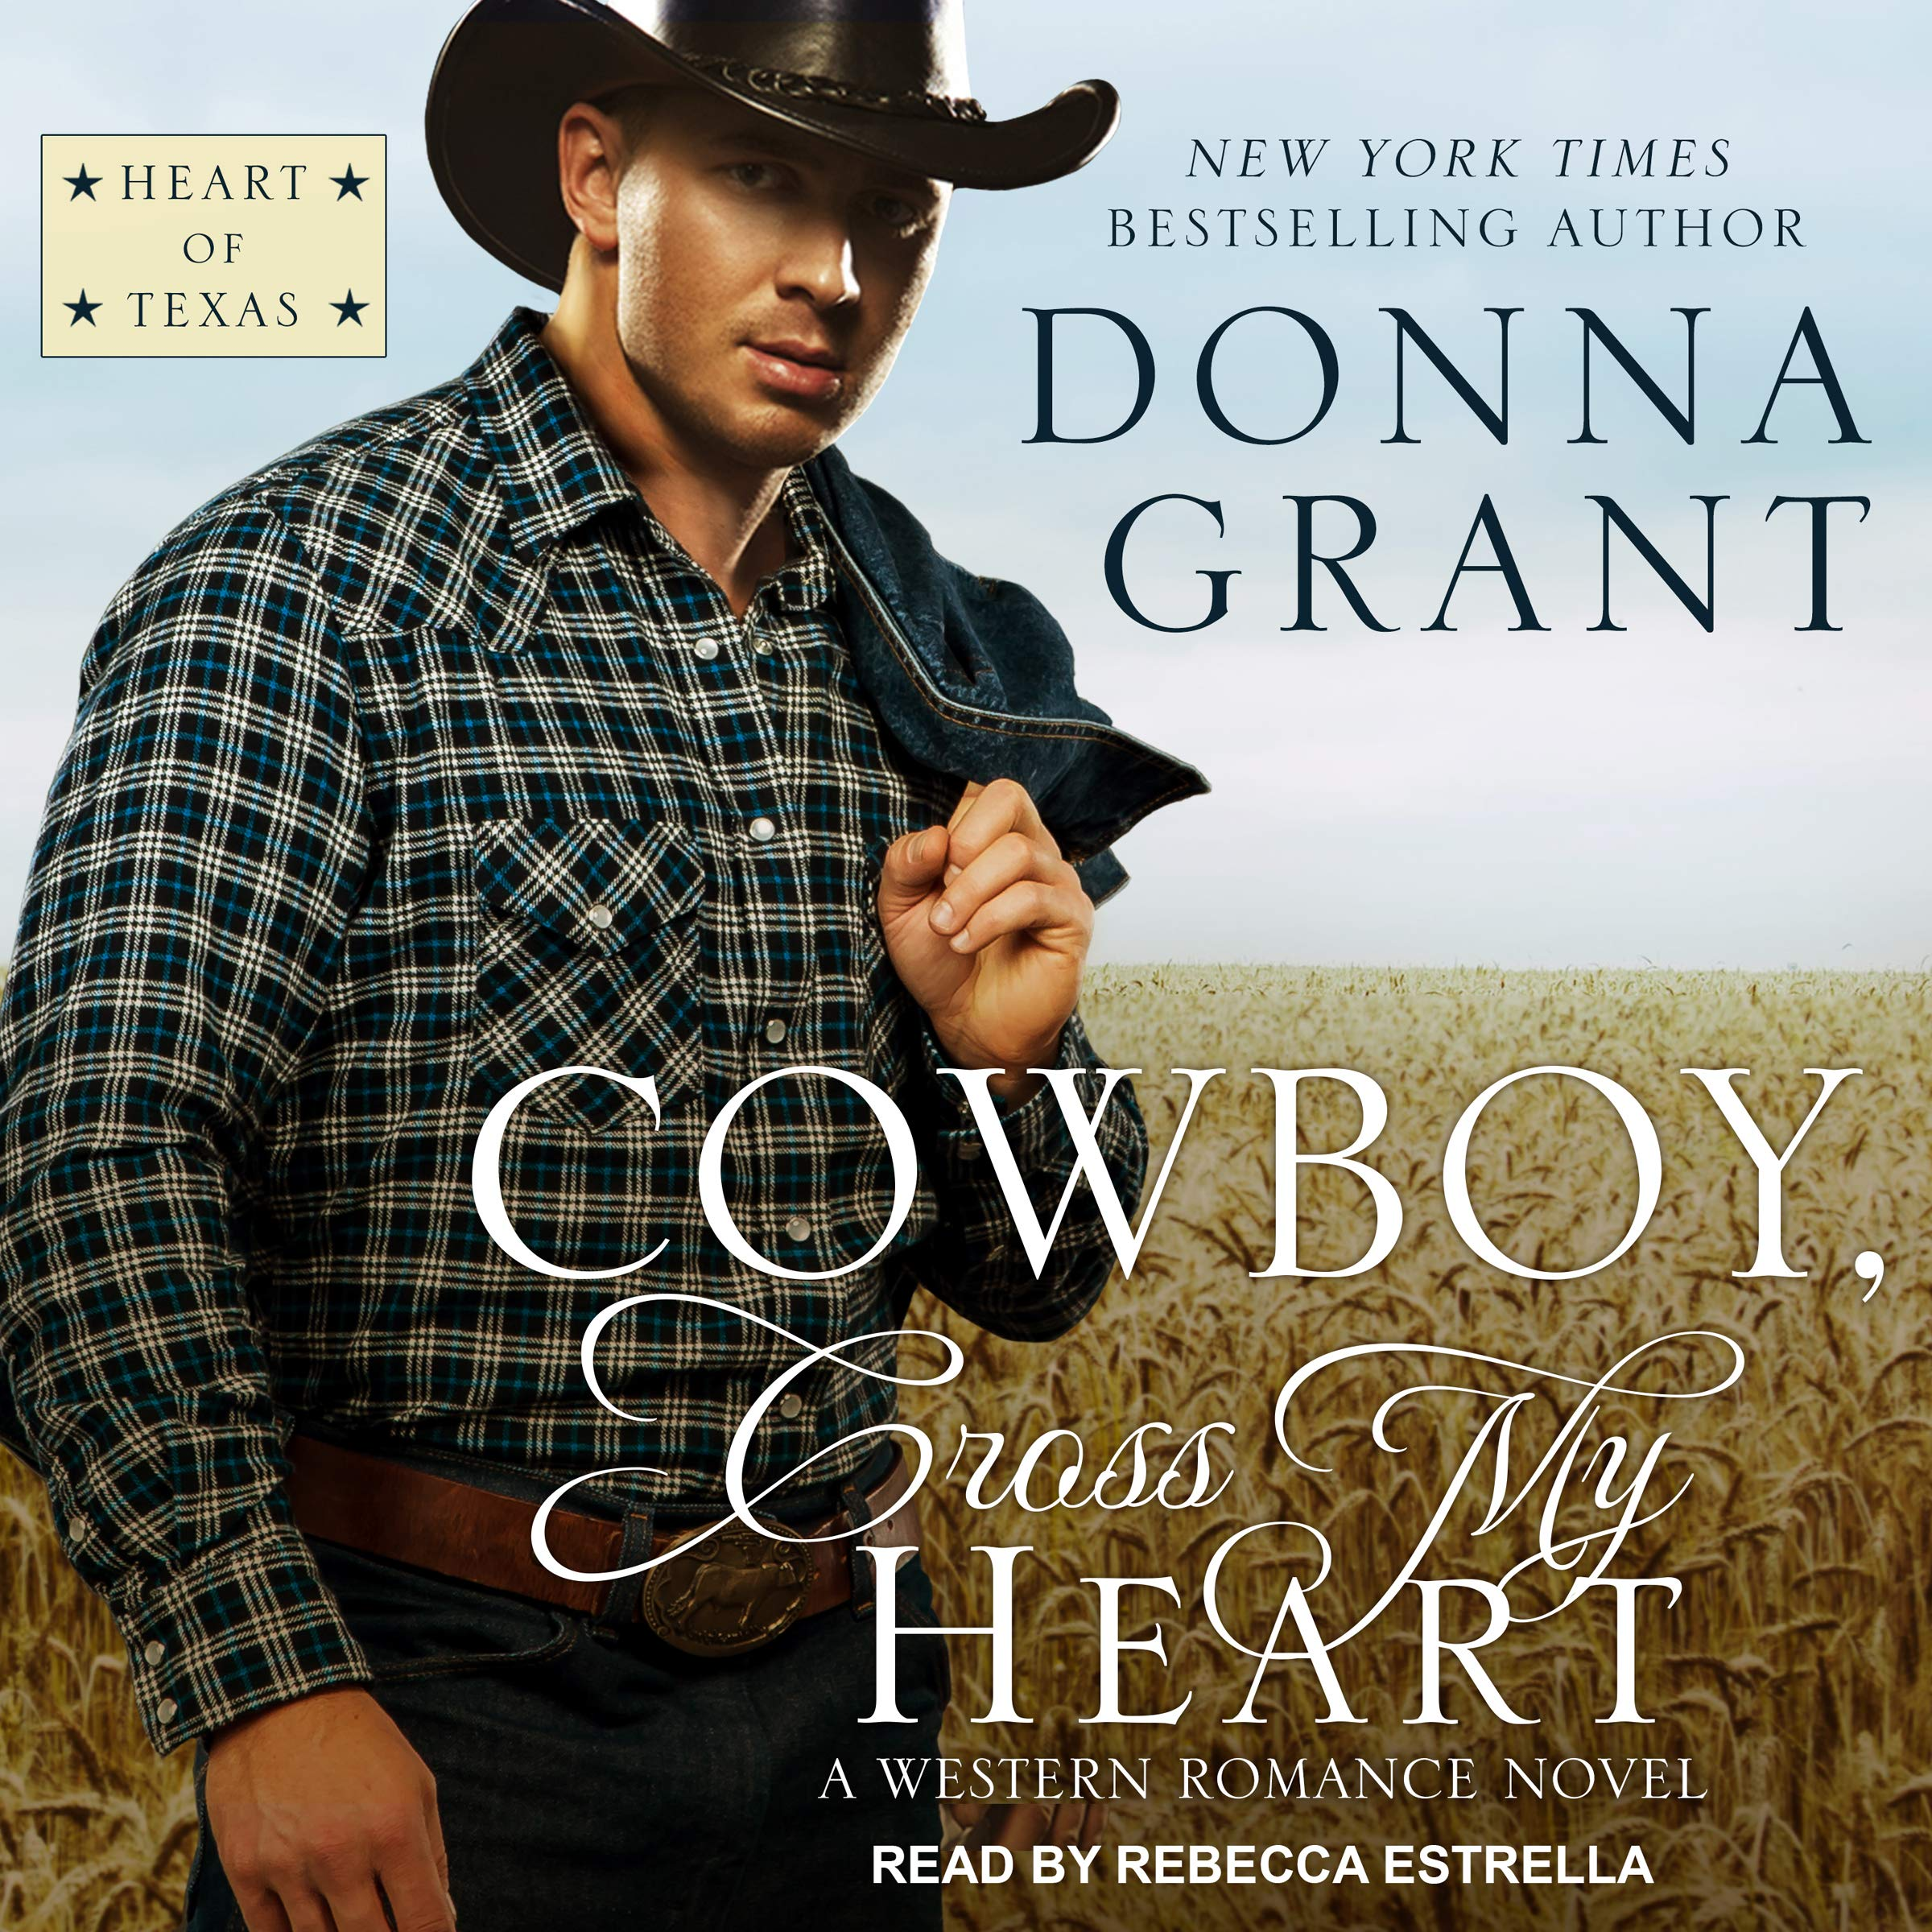 Cowboy, Cross My Heart: A Western Romance Novel: Heart of Texas Series, Book 2